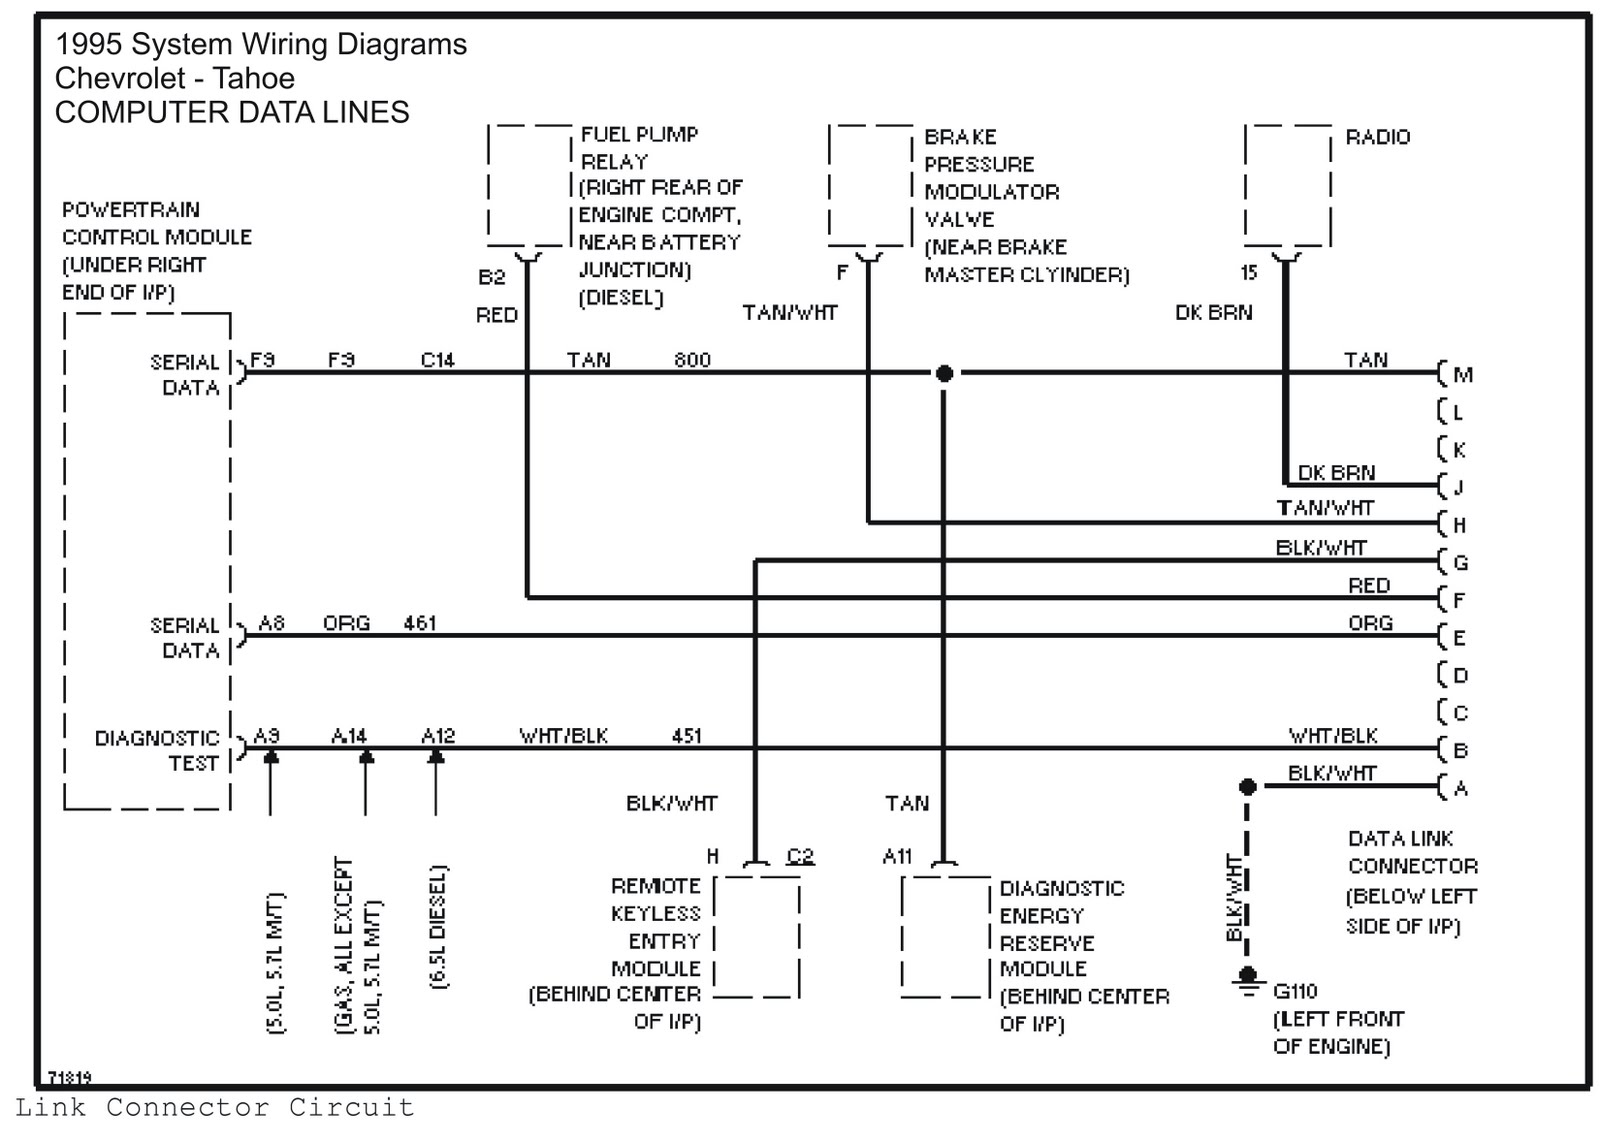 1993 Suburban Ac Diagram Great Design Of Wiring Chevy Tahoe Html 2004